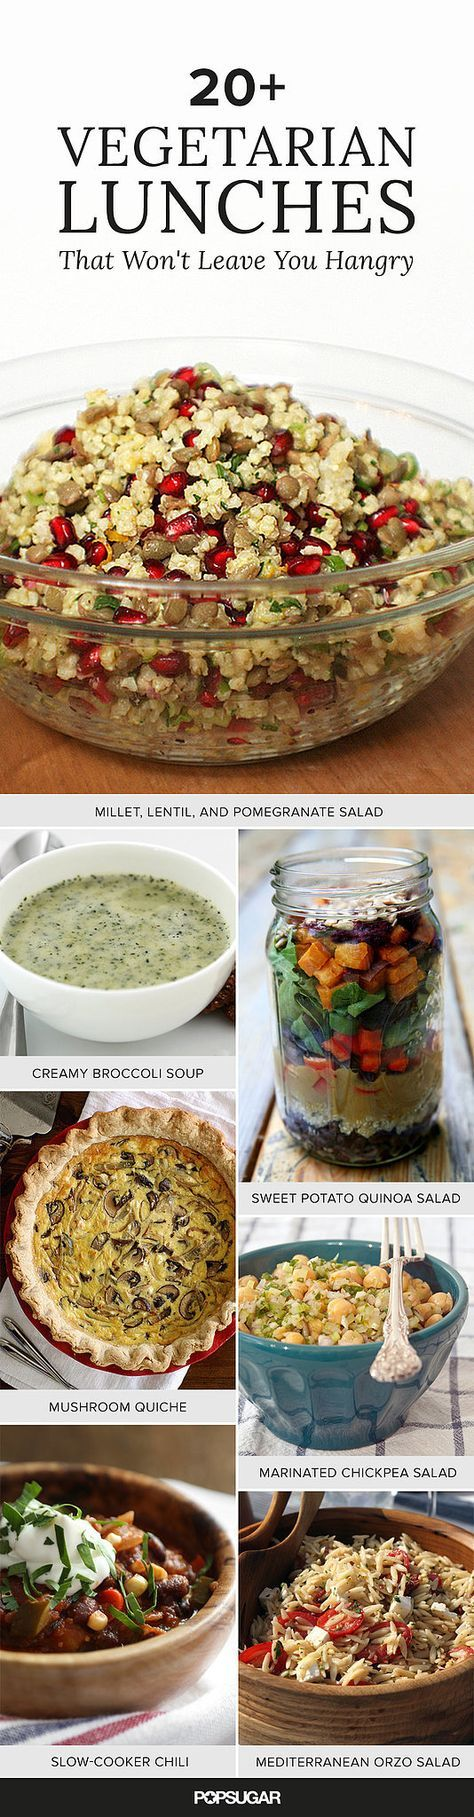 Raise your hand if you're sick of packing your lunch only to find yourself raiding your office's chips and candy stash by three in the afternoon. These recipes, ranging from a hearty soba noodle salad to a food-coma-free creamy broccoli soup (the secret: Greek yogurt), will solve your problem, and they're all vegetarian to boot.